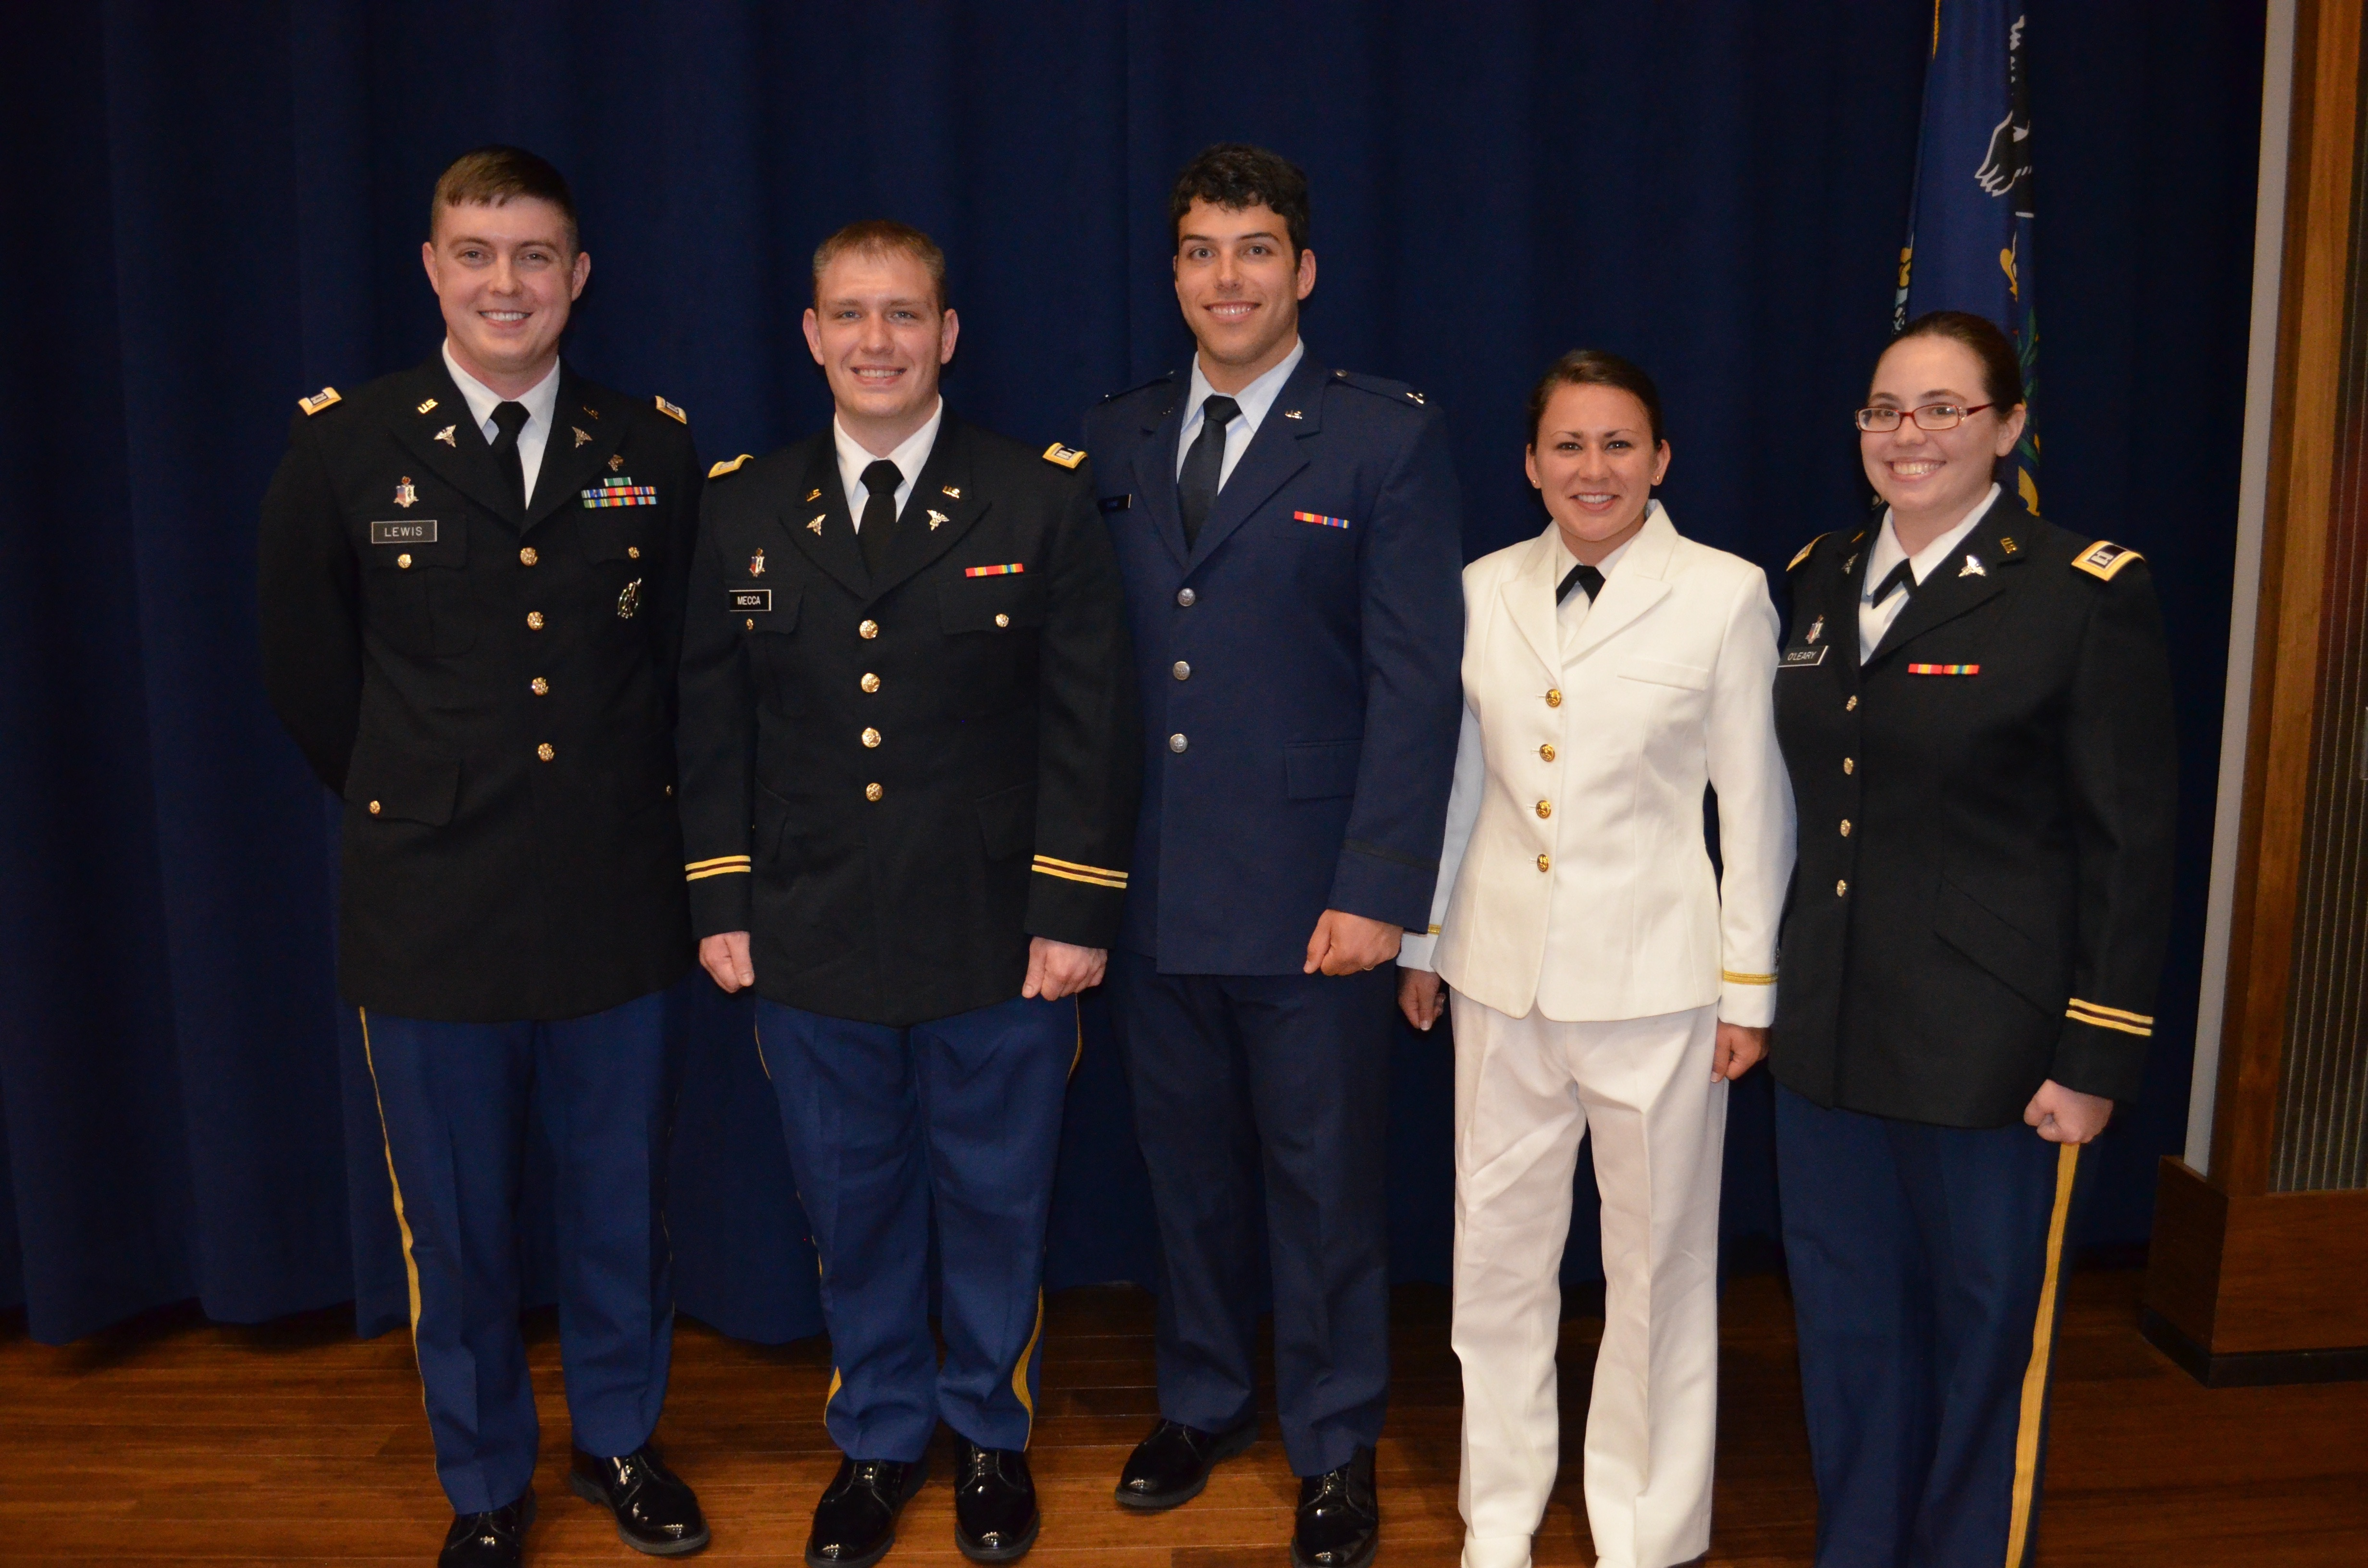 Military commissioning 2018